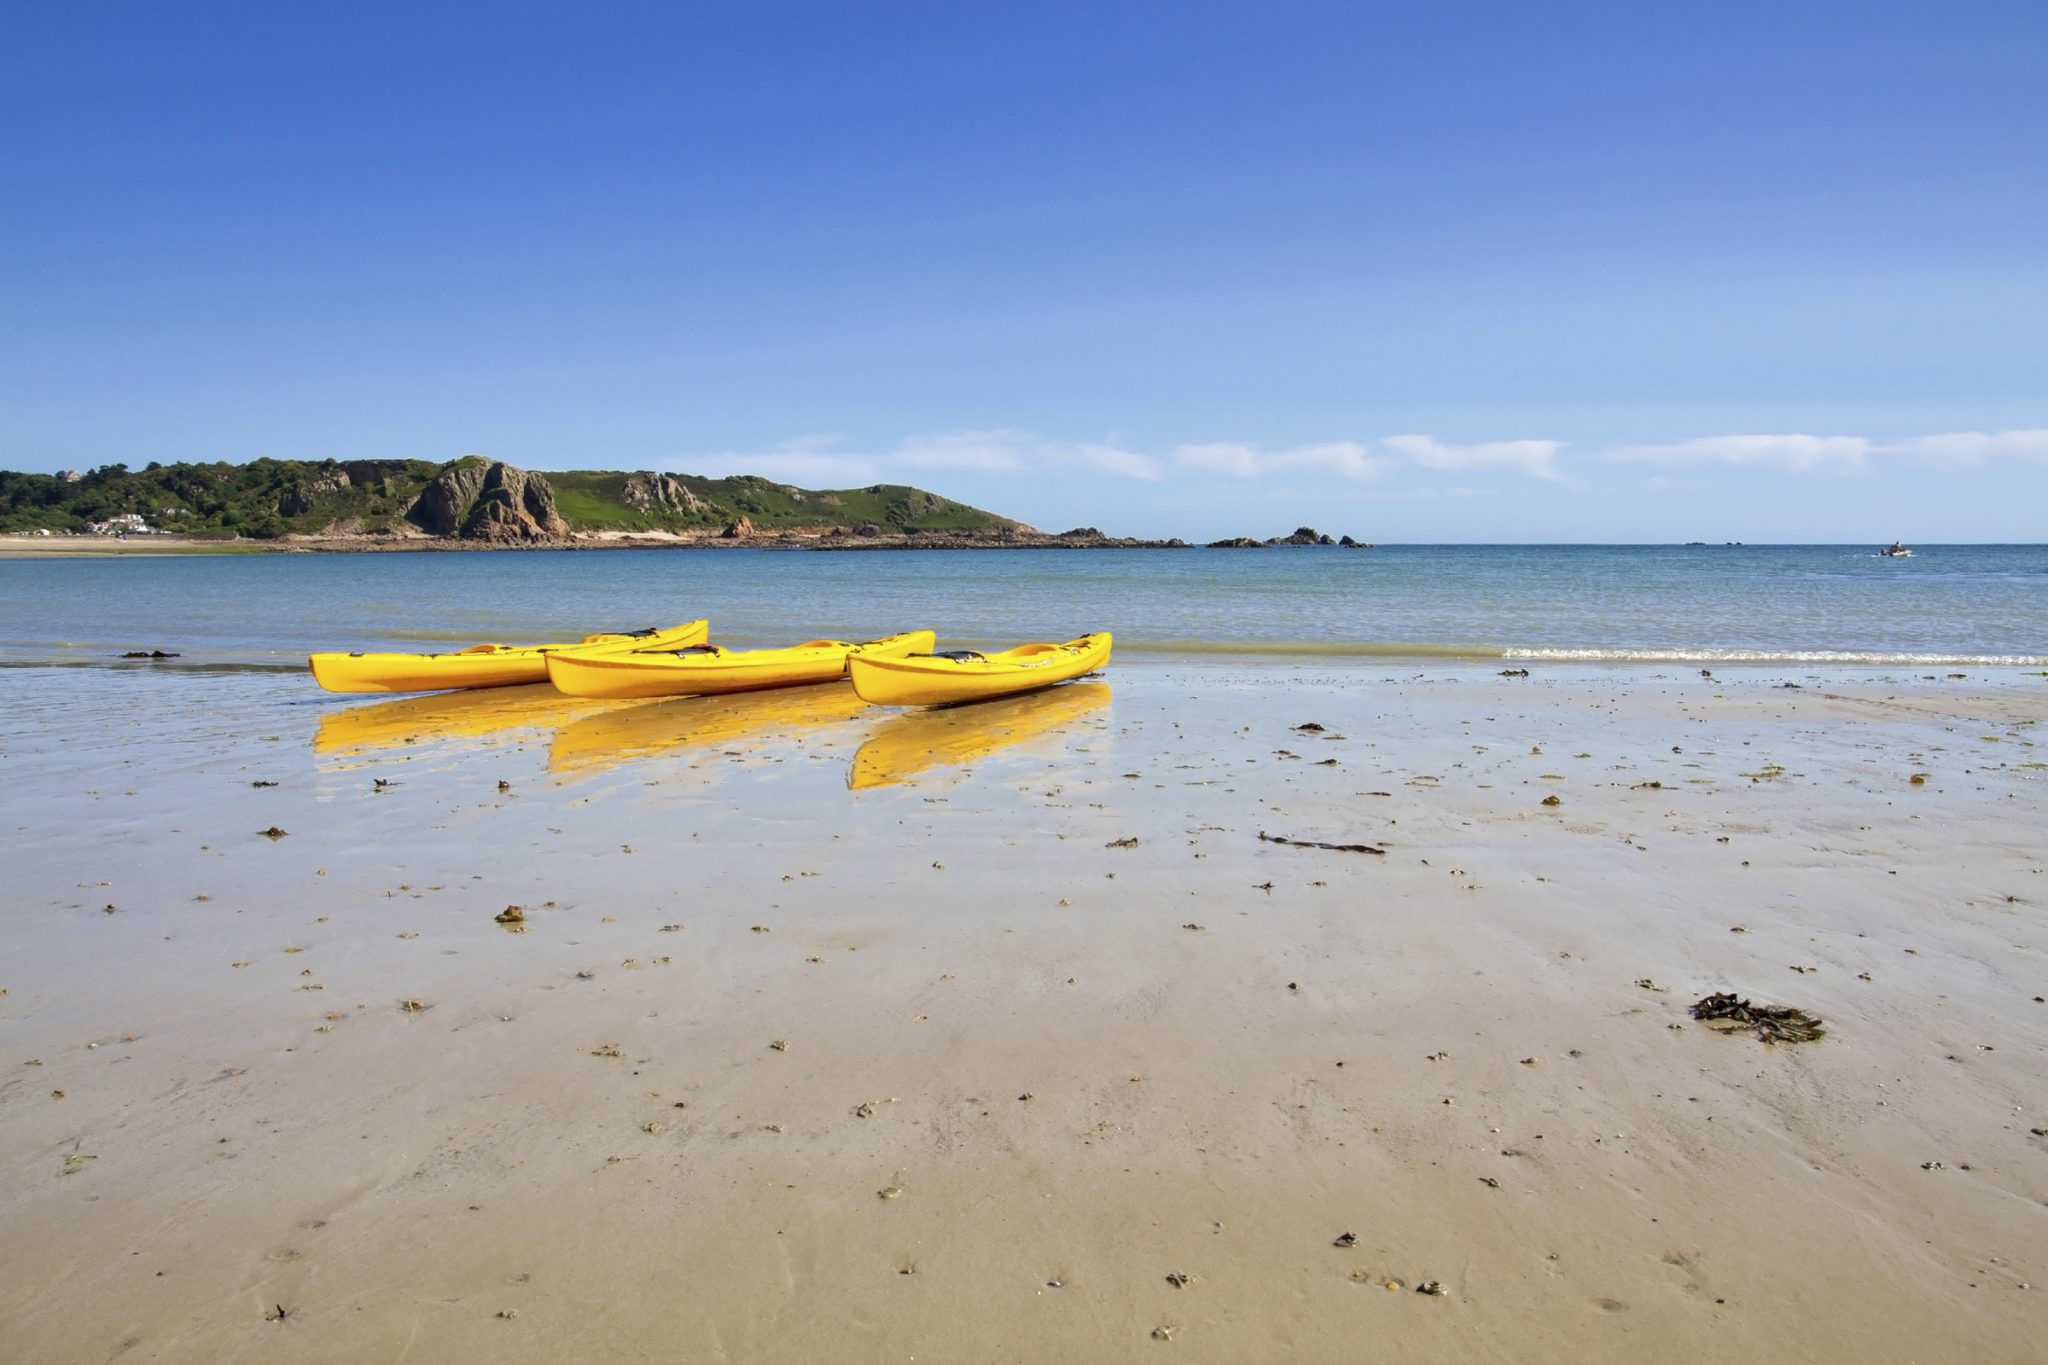 Family Beach Holidays UK - St Brelade's Beach, Jersey